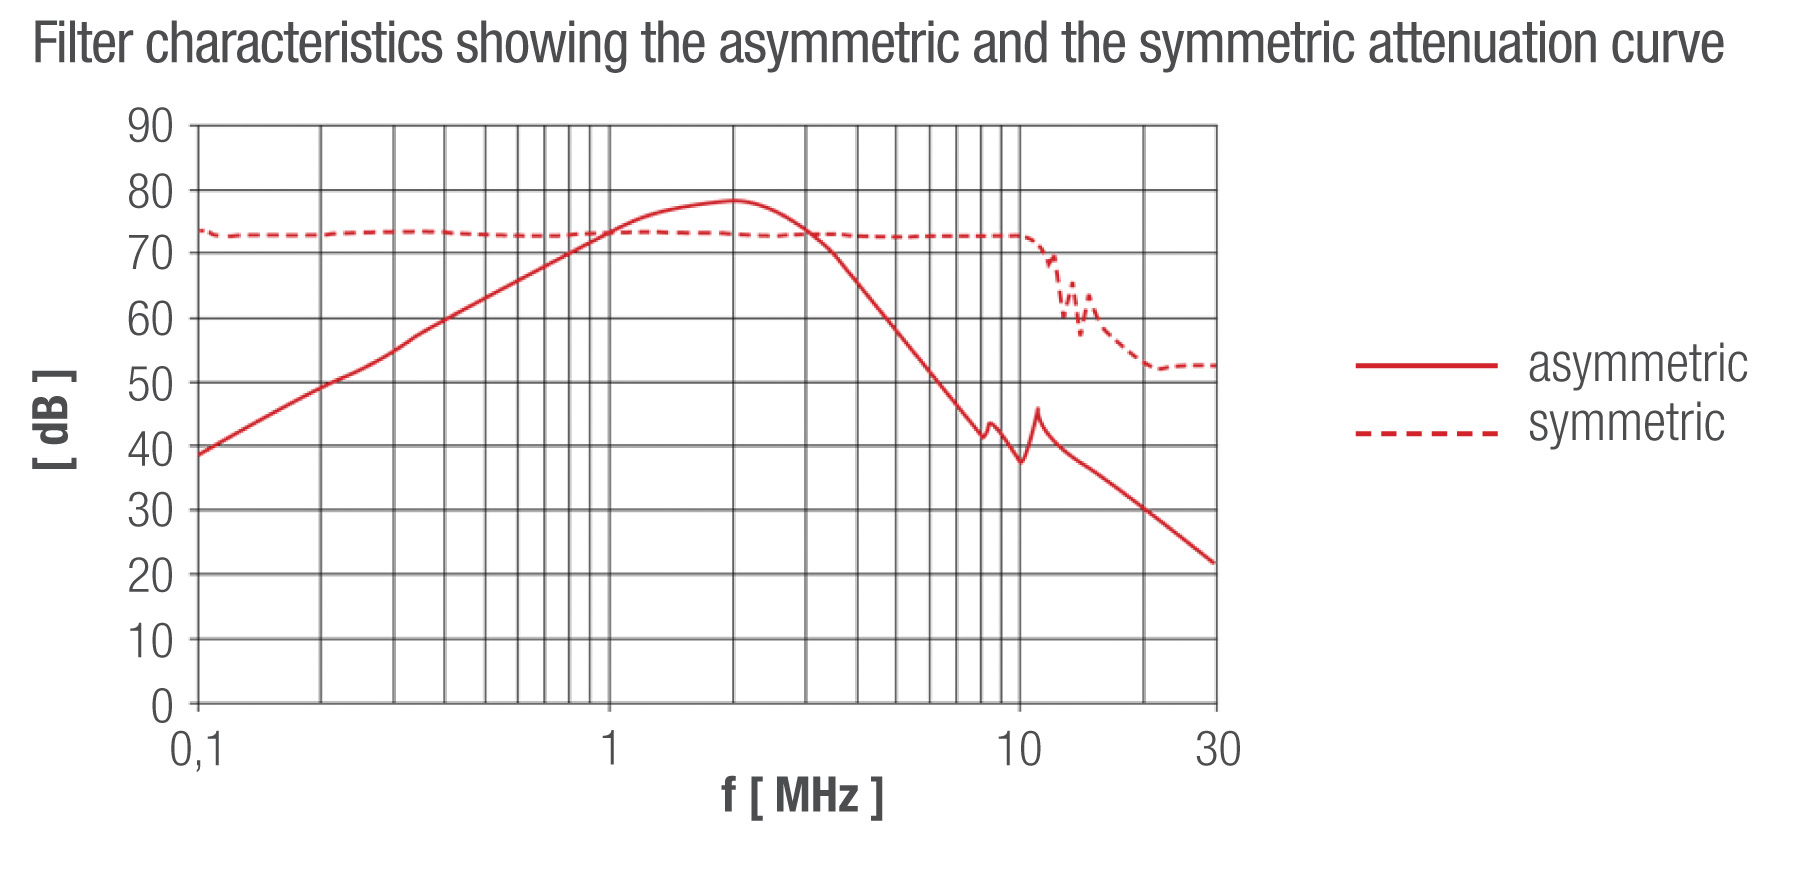 asymmetric and symmetric attenuation curve